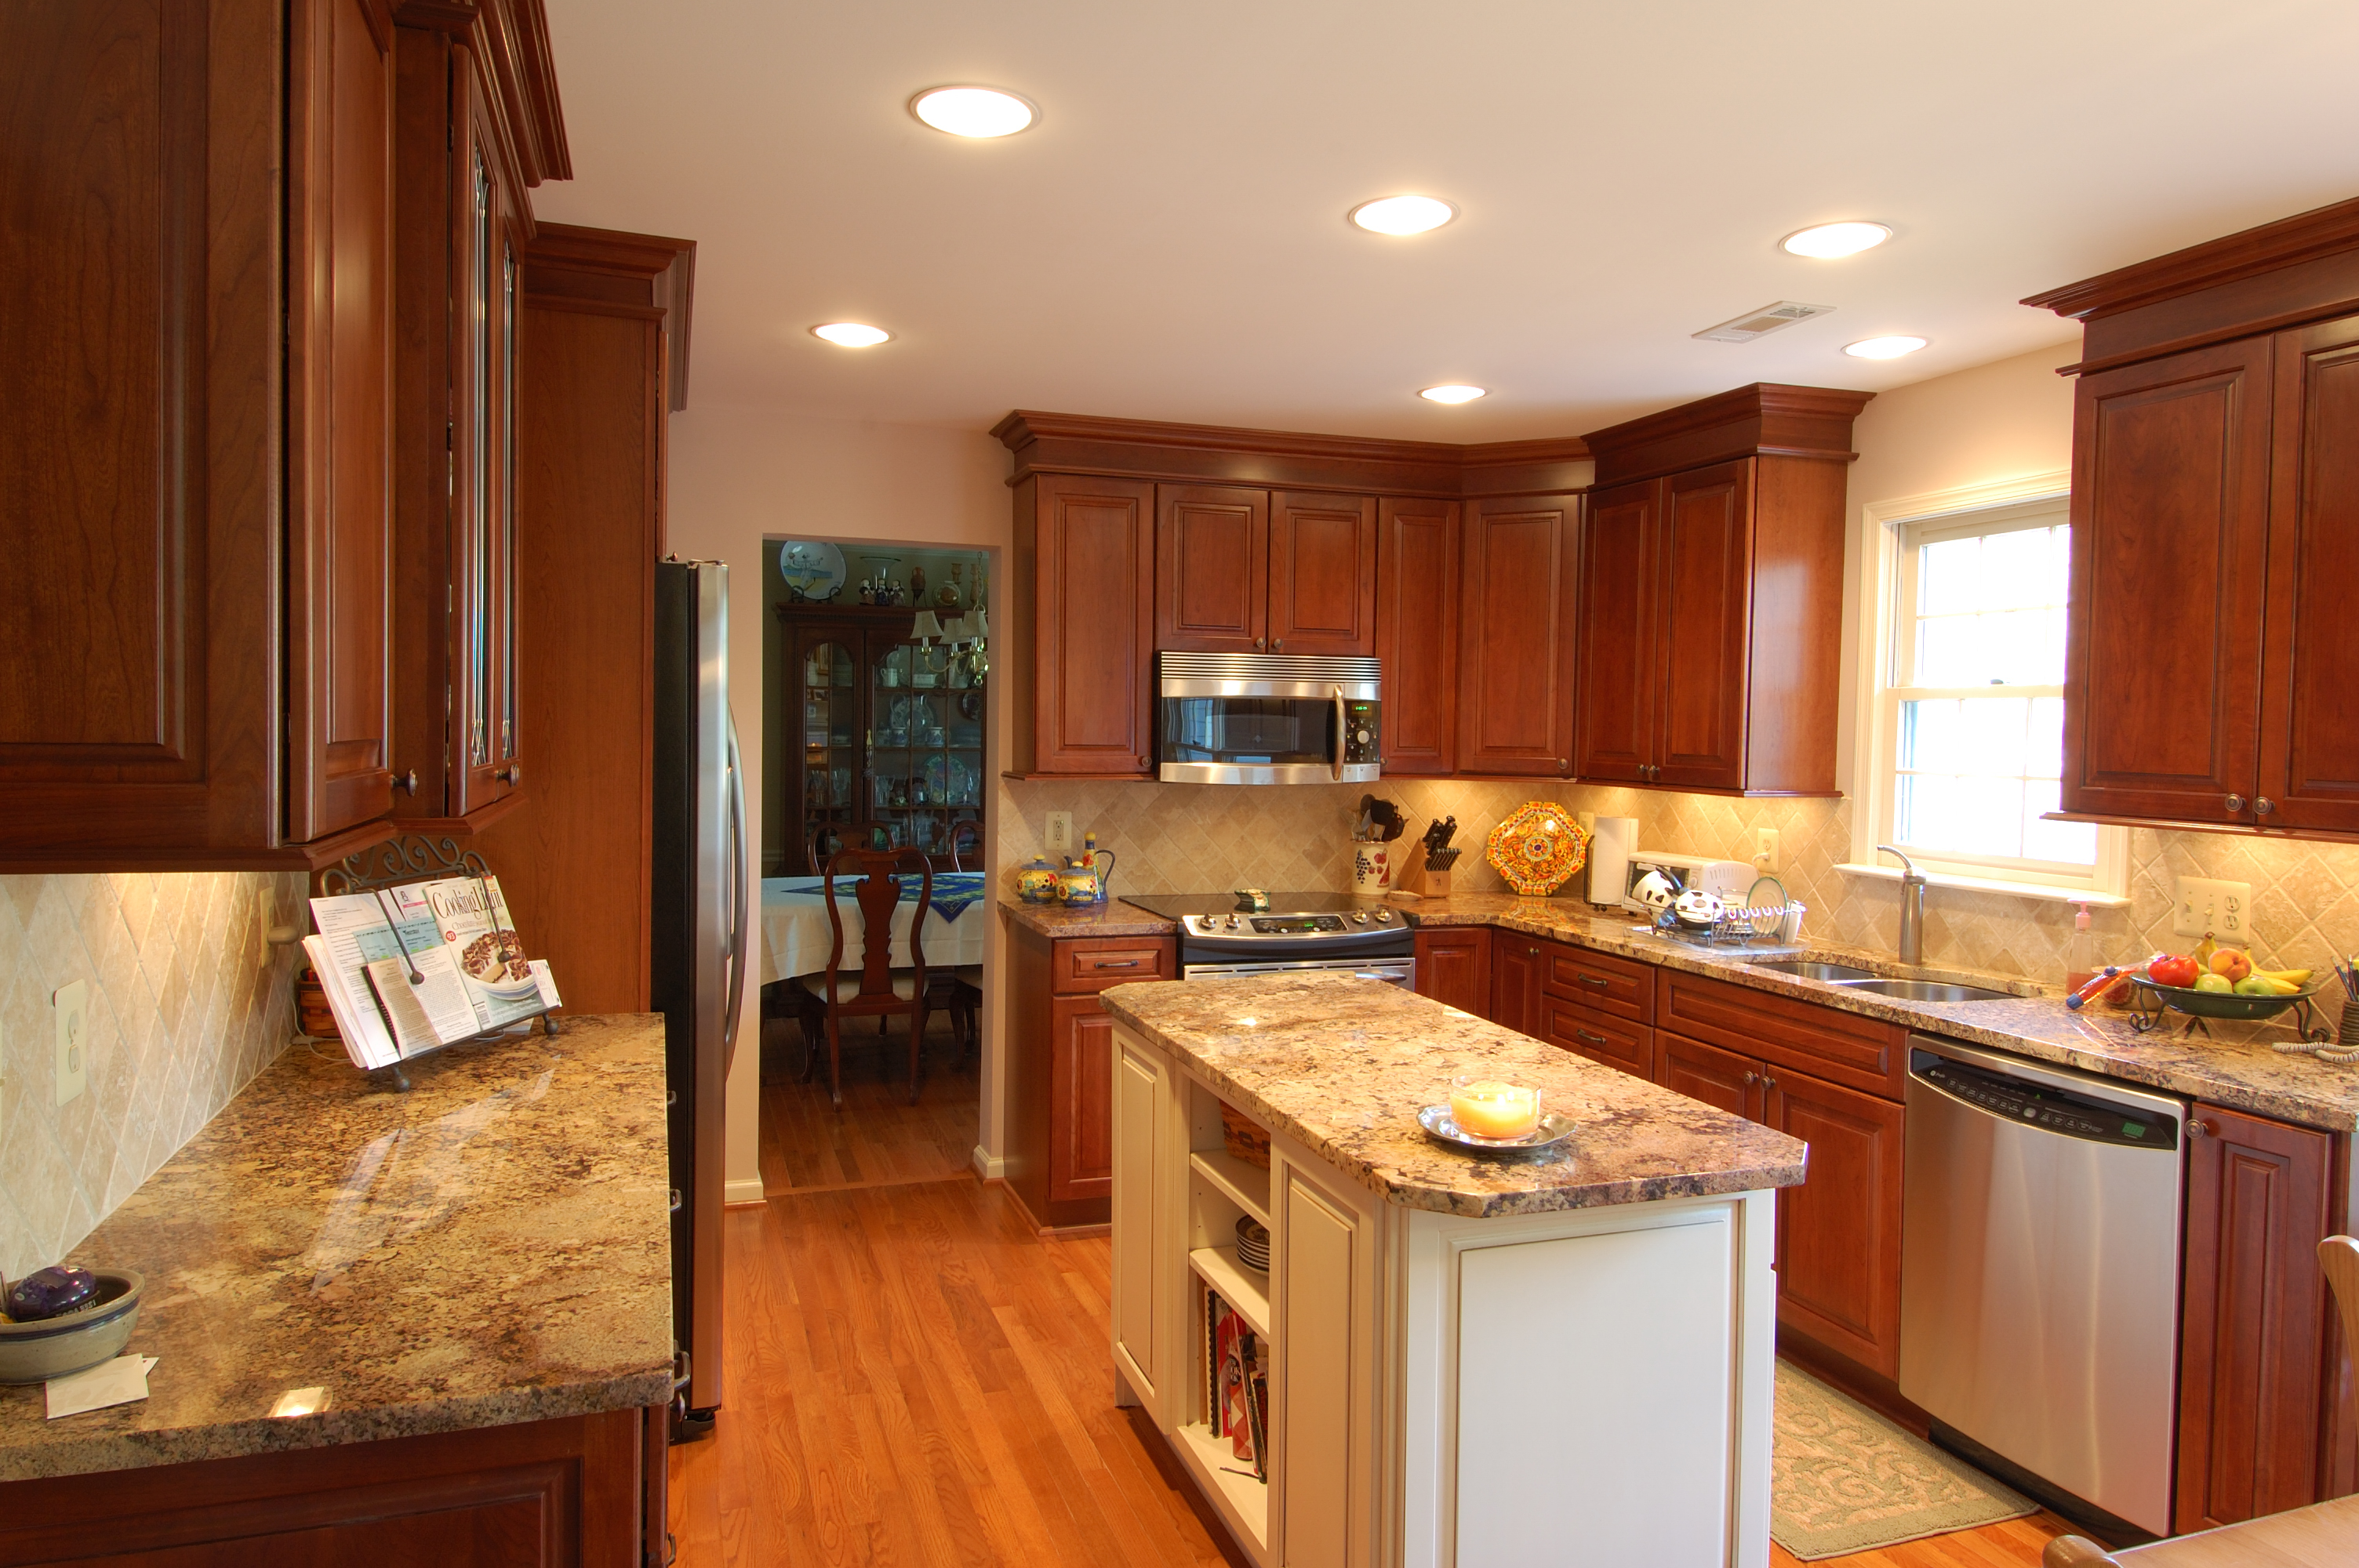 Kitchen Cabinet Remodeling How Luxury Selections Affect Your Kitchen Remodel Price